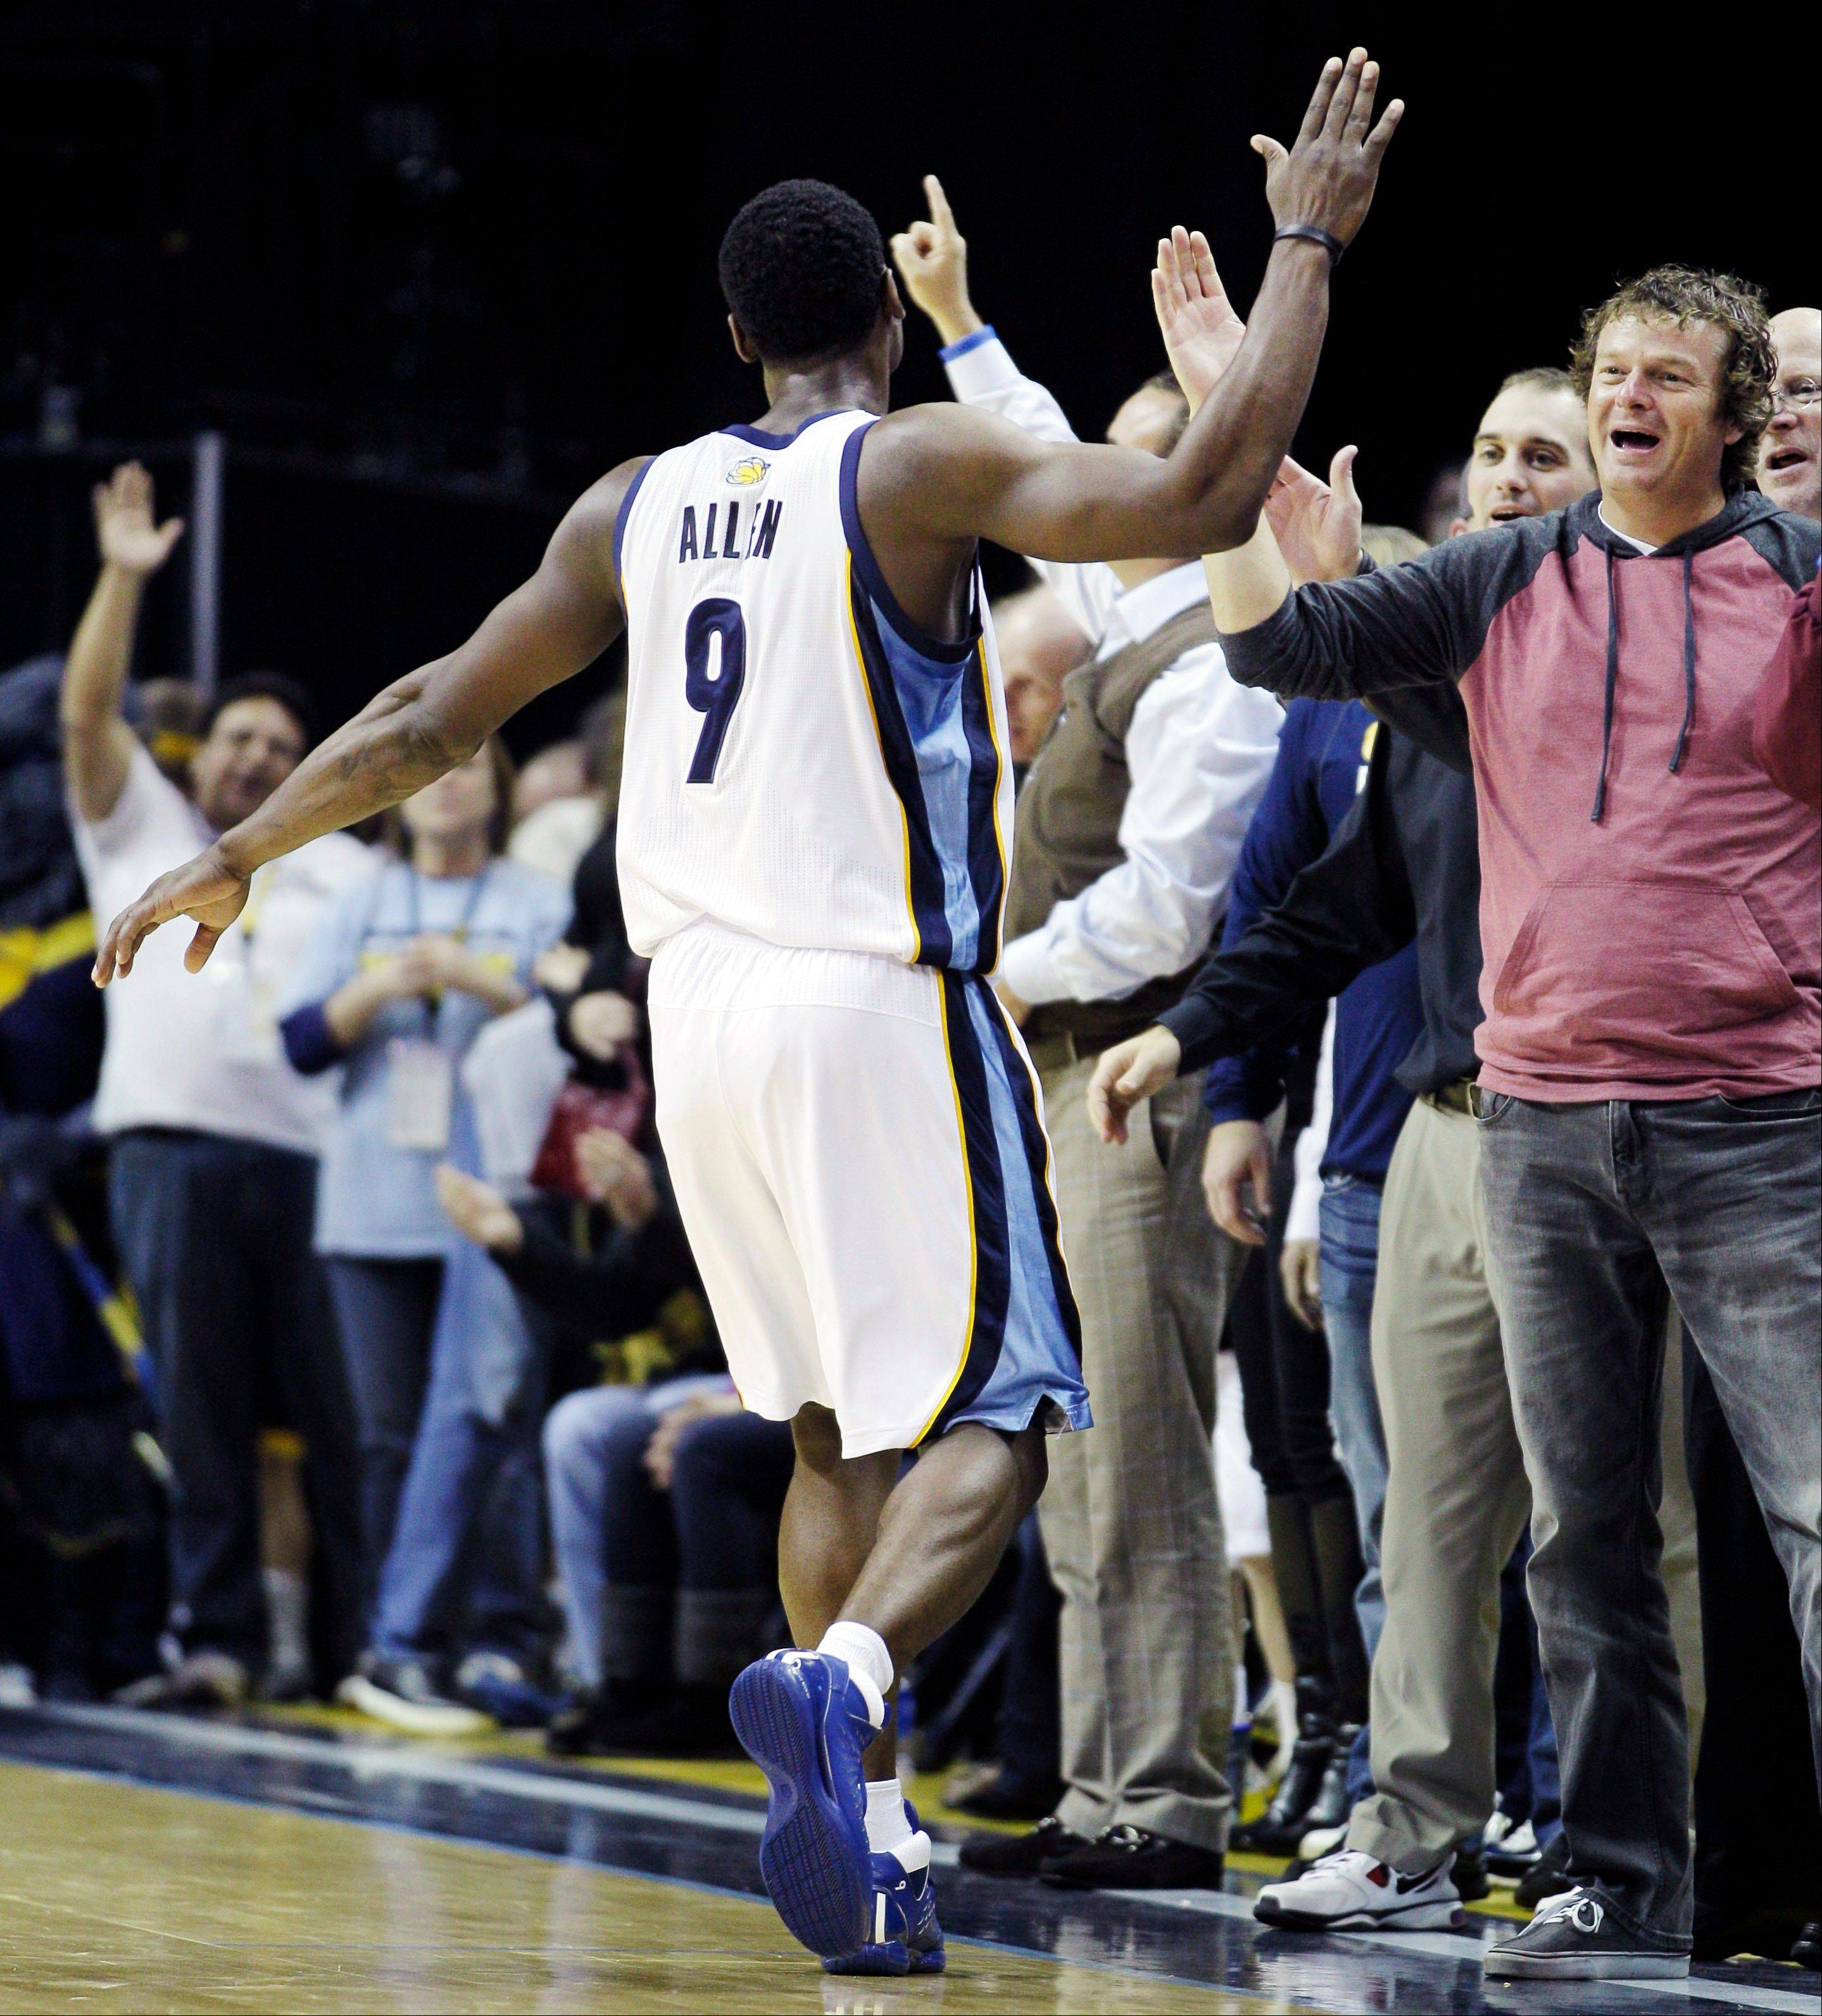 Memphis Grizzlies fans cheer and greet Memphis Grizzlies' Tony Allen during a timeout late in the second half of an NBA basketball game against the Cleveland Cavaliers in Memphis, Tenn, Monday, Nov. 26, 2012. The Grizzlies won 84-78.